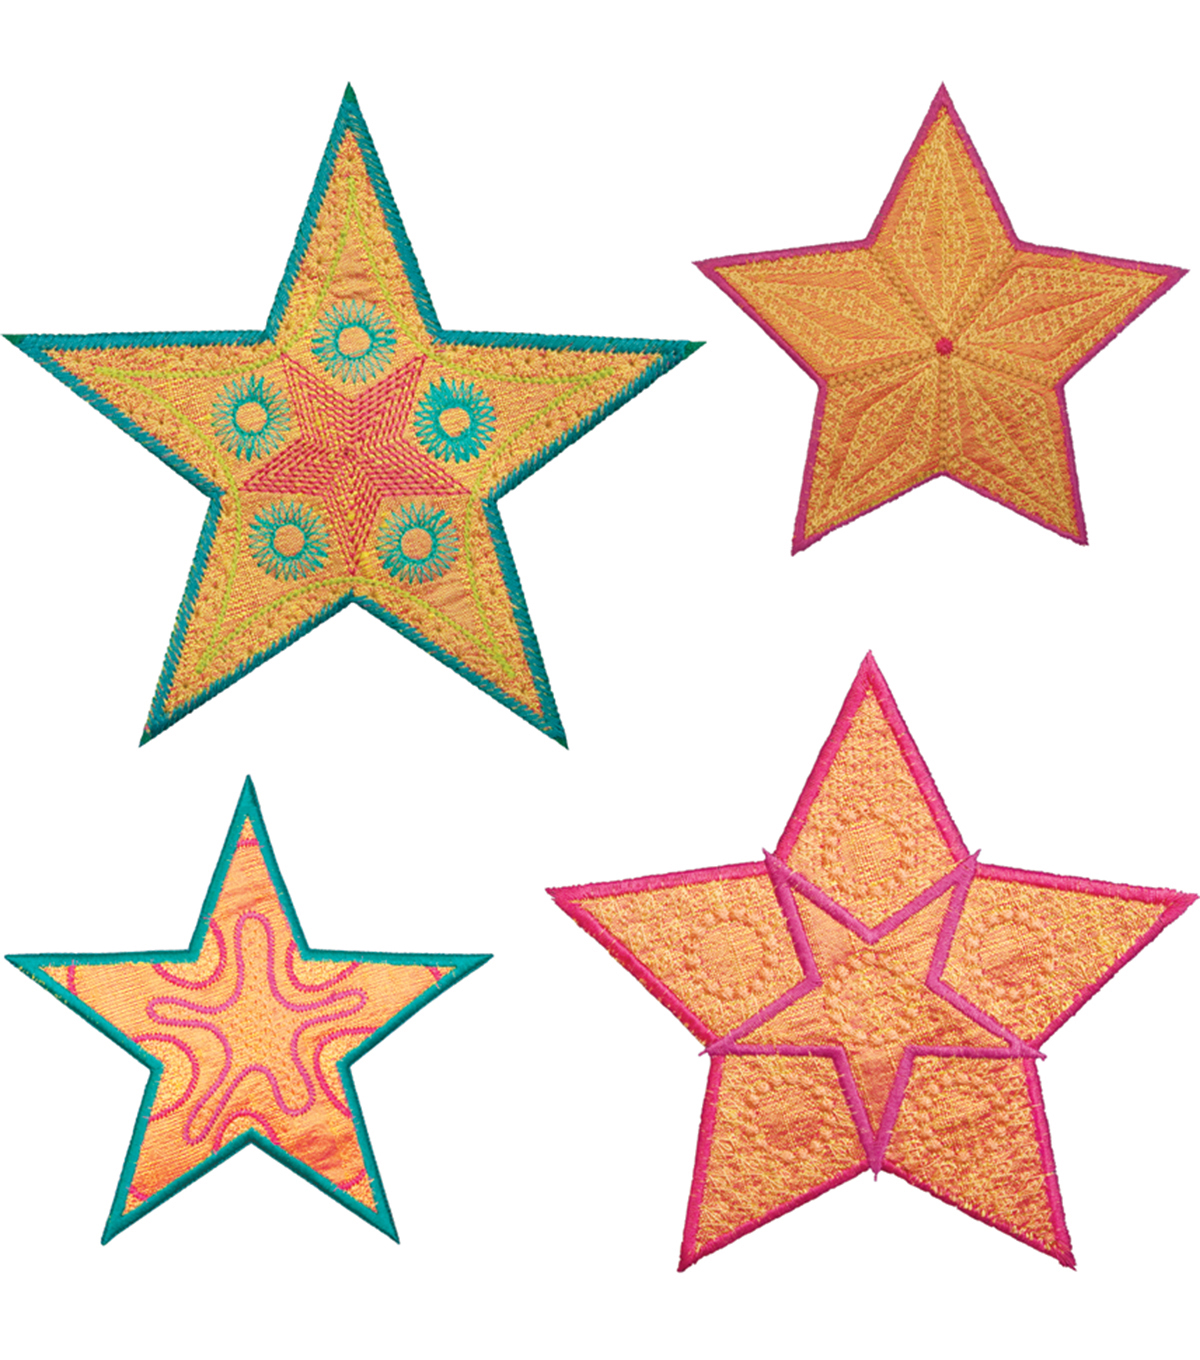 GO! Fabric Cutting Dies-Star Medley 5 Point By Sarah Vedeler